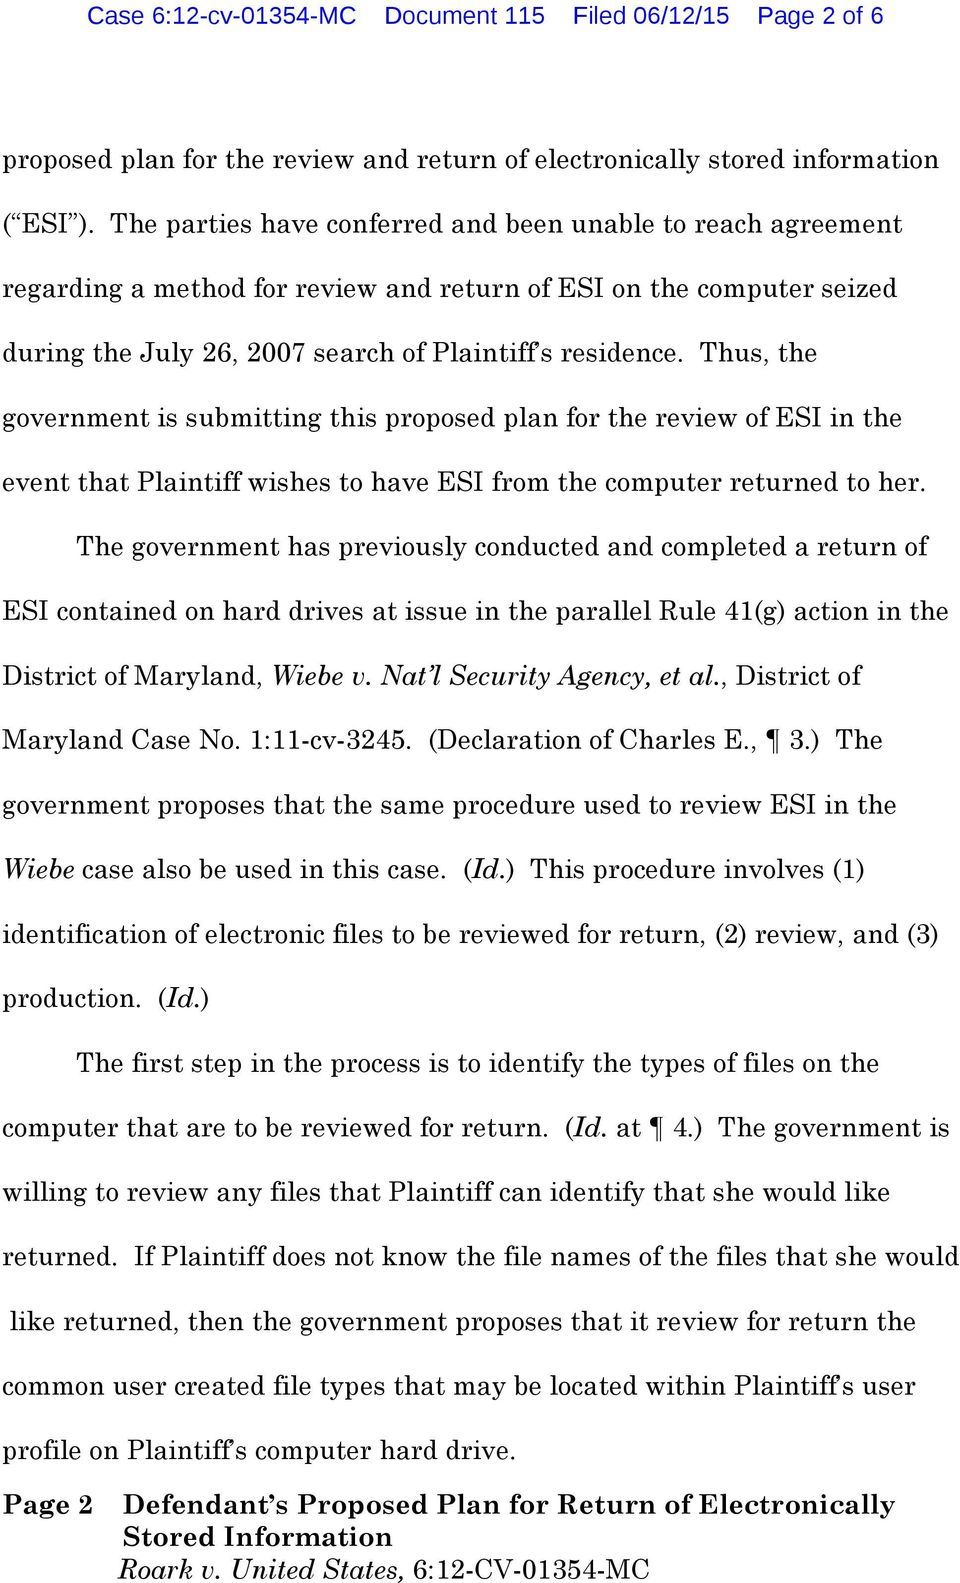 Thus, the government is submitting this proposed plan for the review of ESI in the event that Plaintiff wishes to have ESI from the computer returned to her.